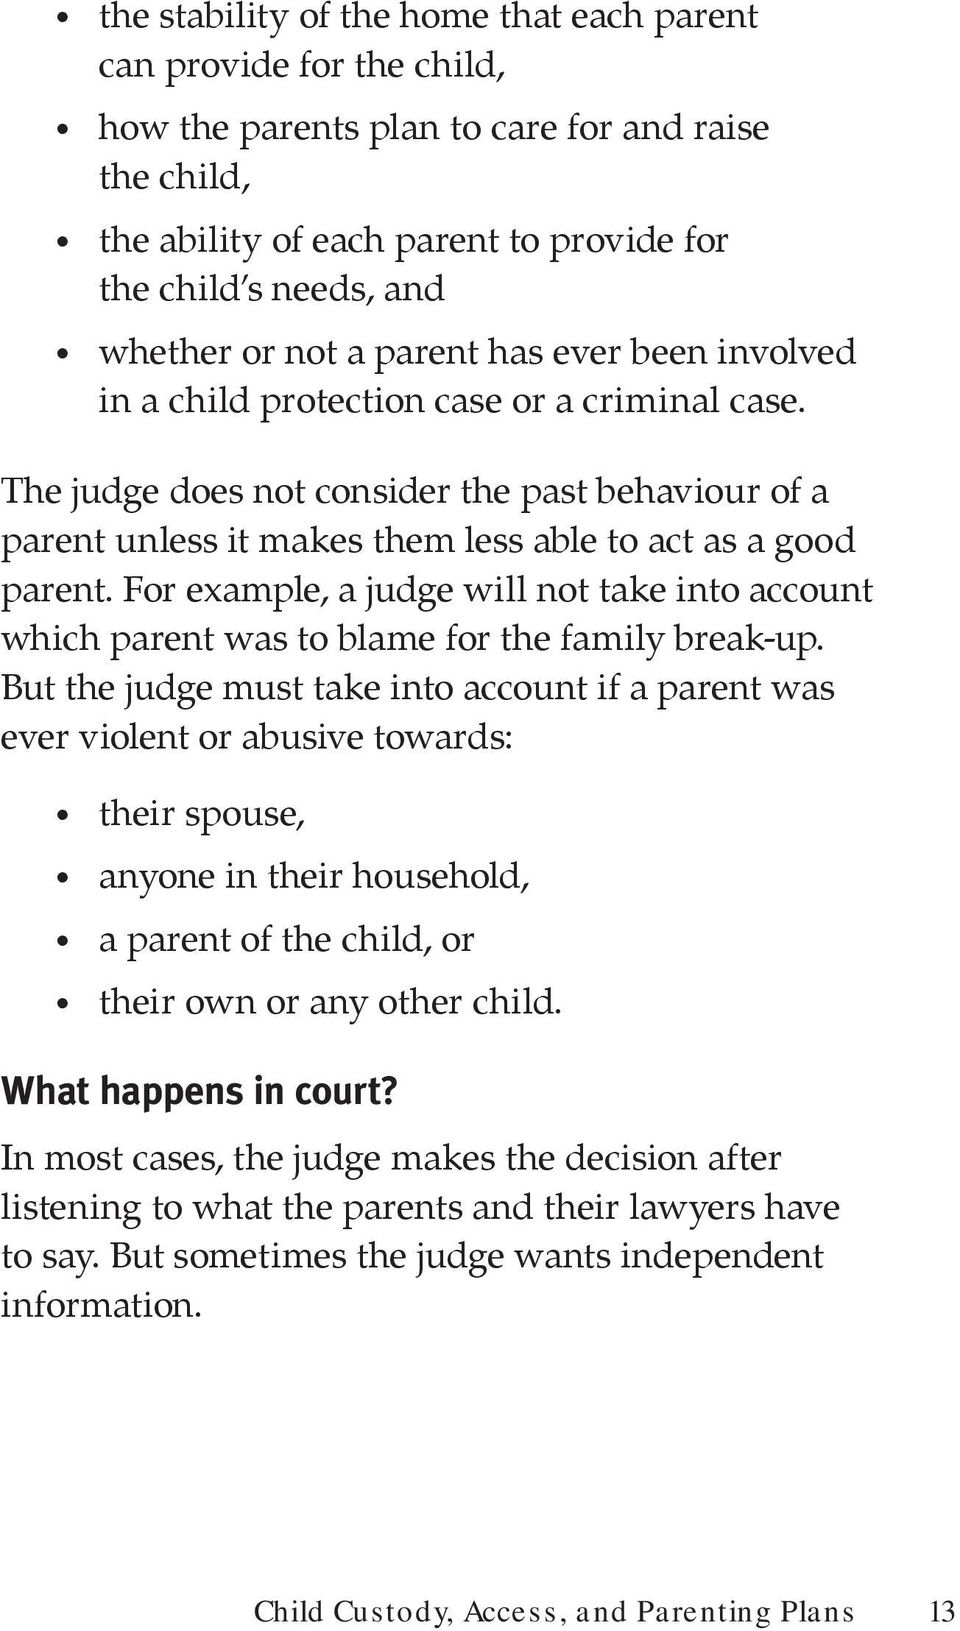 For example, a judge will not take into account which parent was to blame for the family break-up.